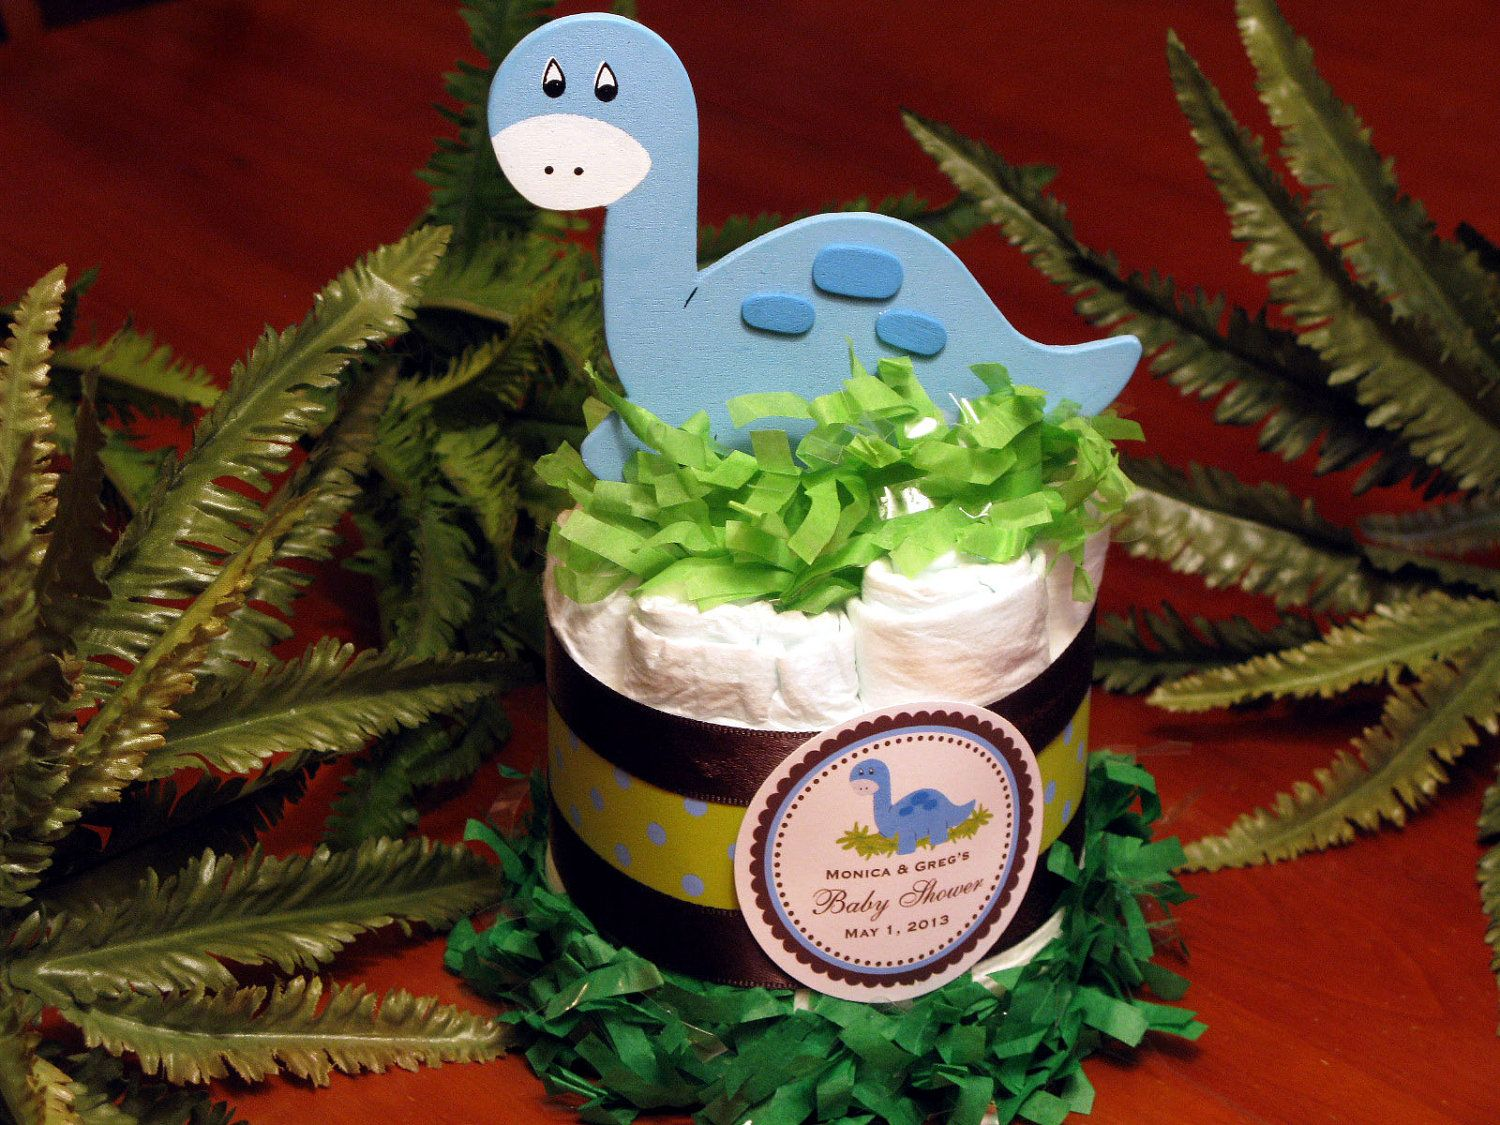 BABY DINO DINOSAUR Diaper Cake Centerpieces   Baby Shower Favors. $9.99,  Via Etsy.